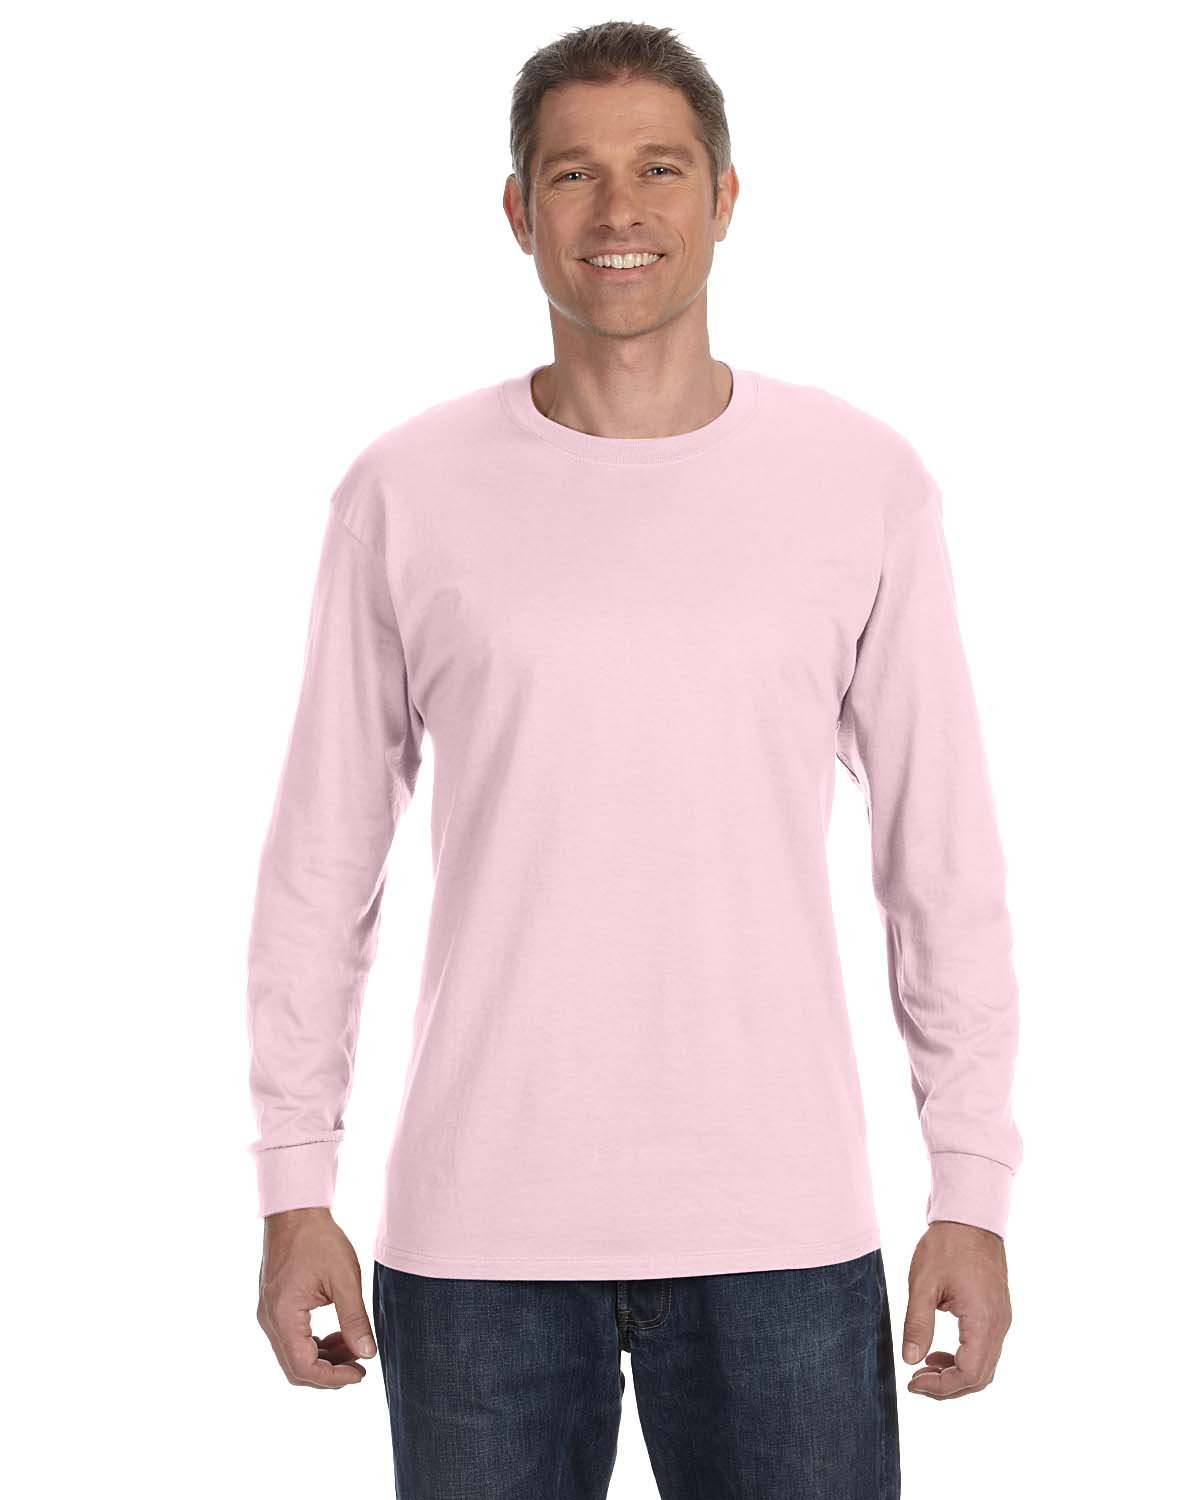 Hanes Adult Authentic-T Long-Sleeve T-Shirt PALE PINK